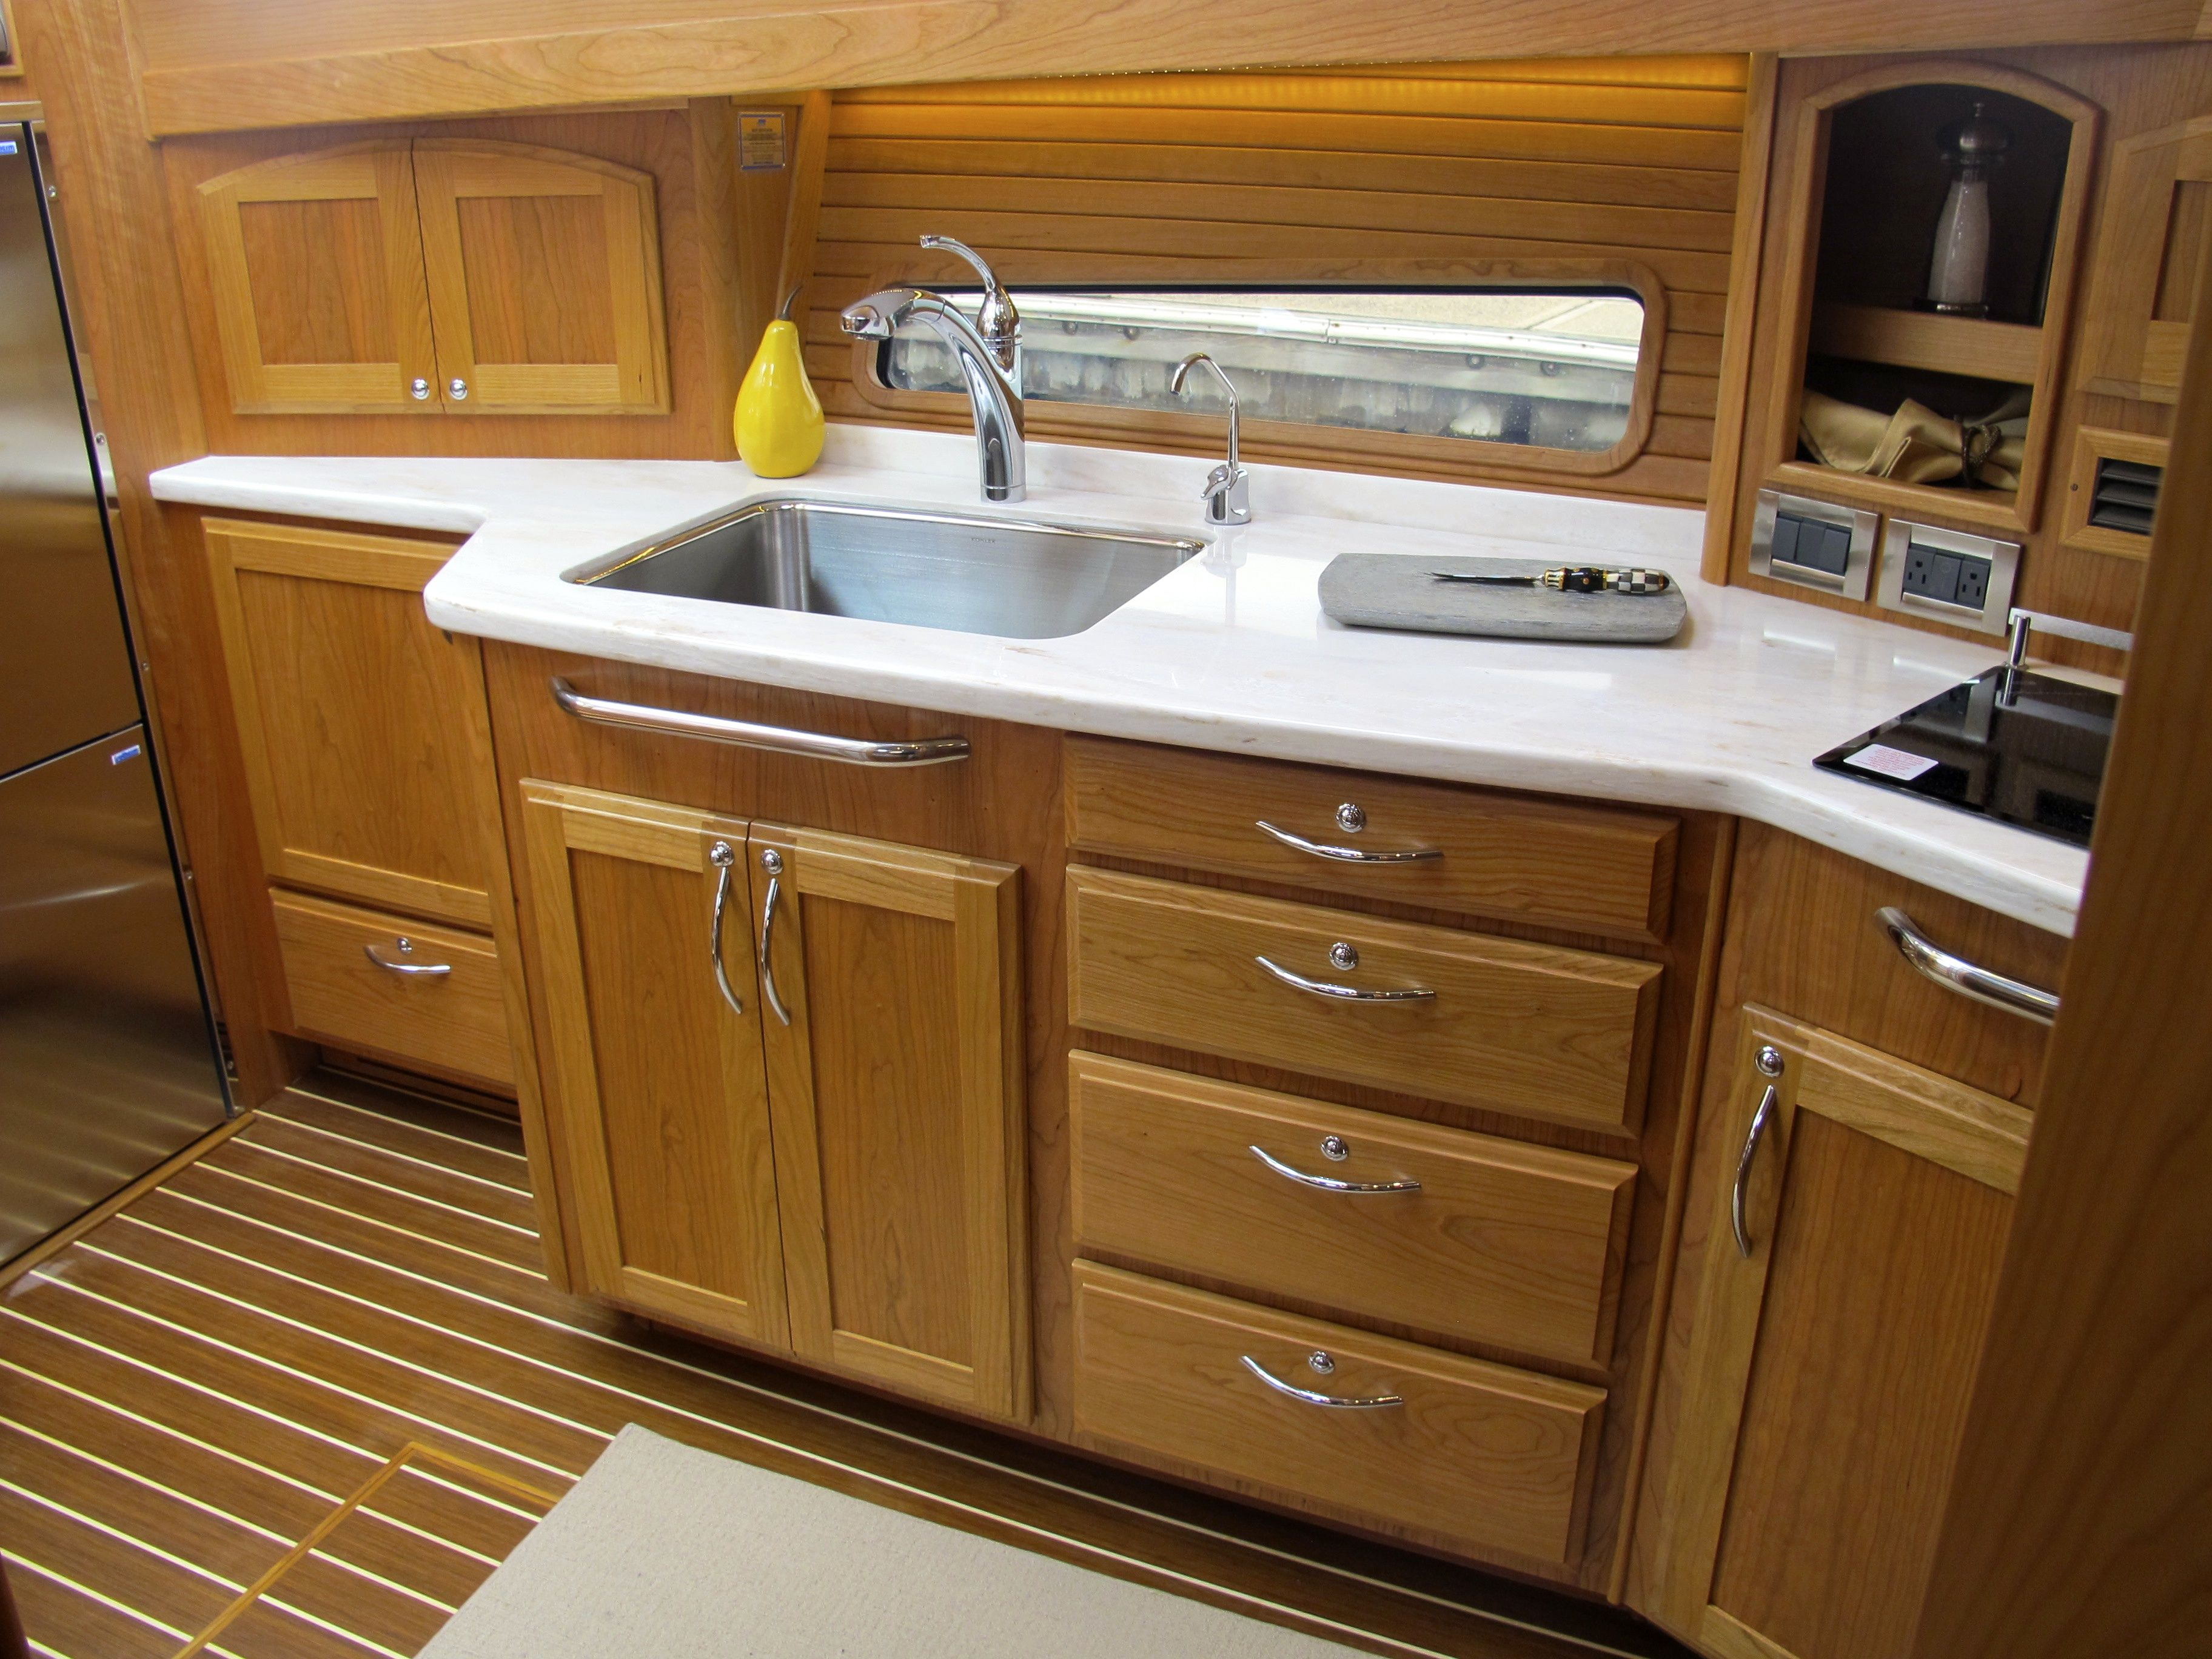 Galley Sabre Yachts 48 Boston Yacht Sales Boat Decor Decor Kitchen